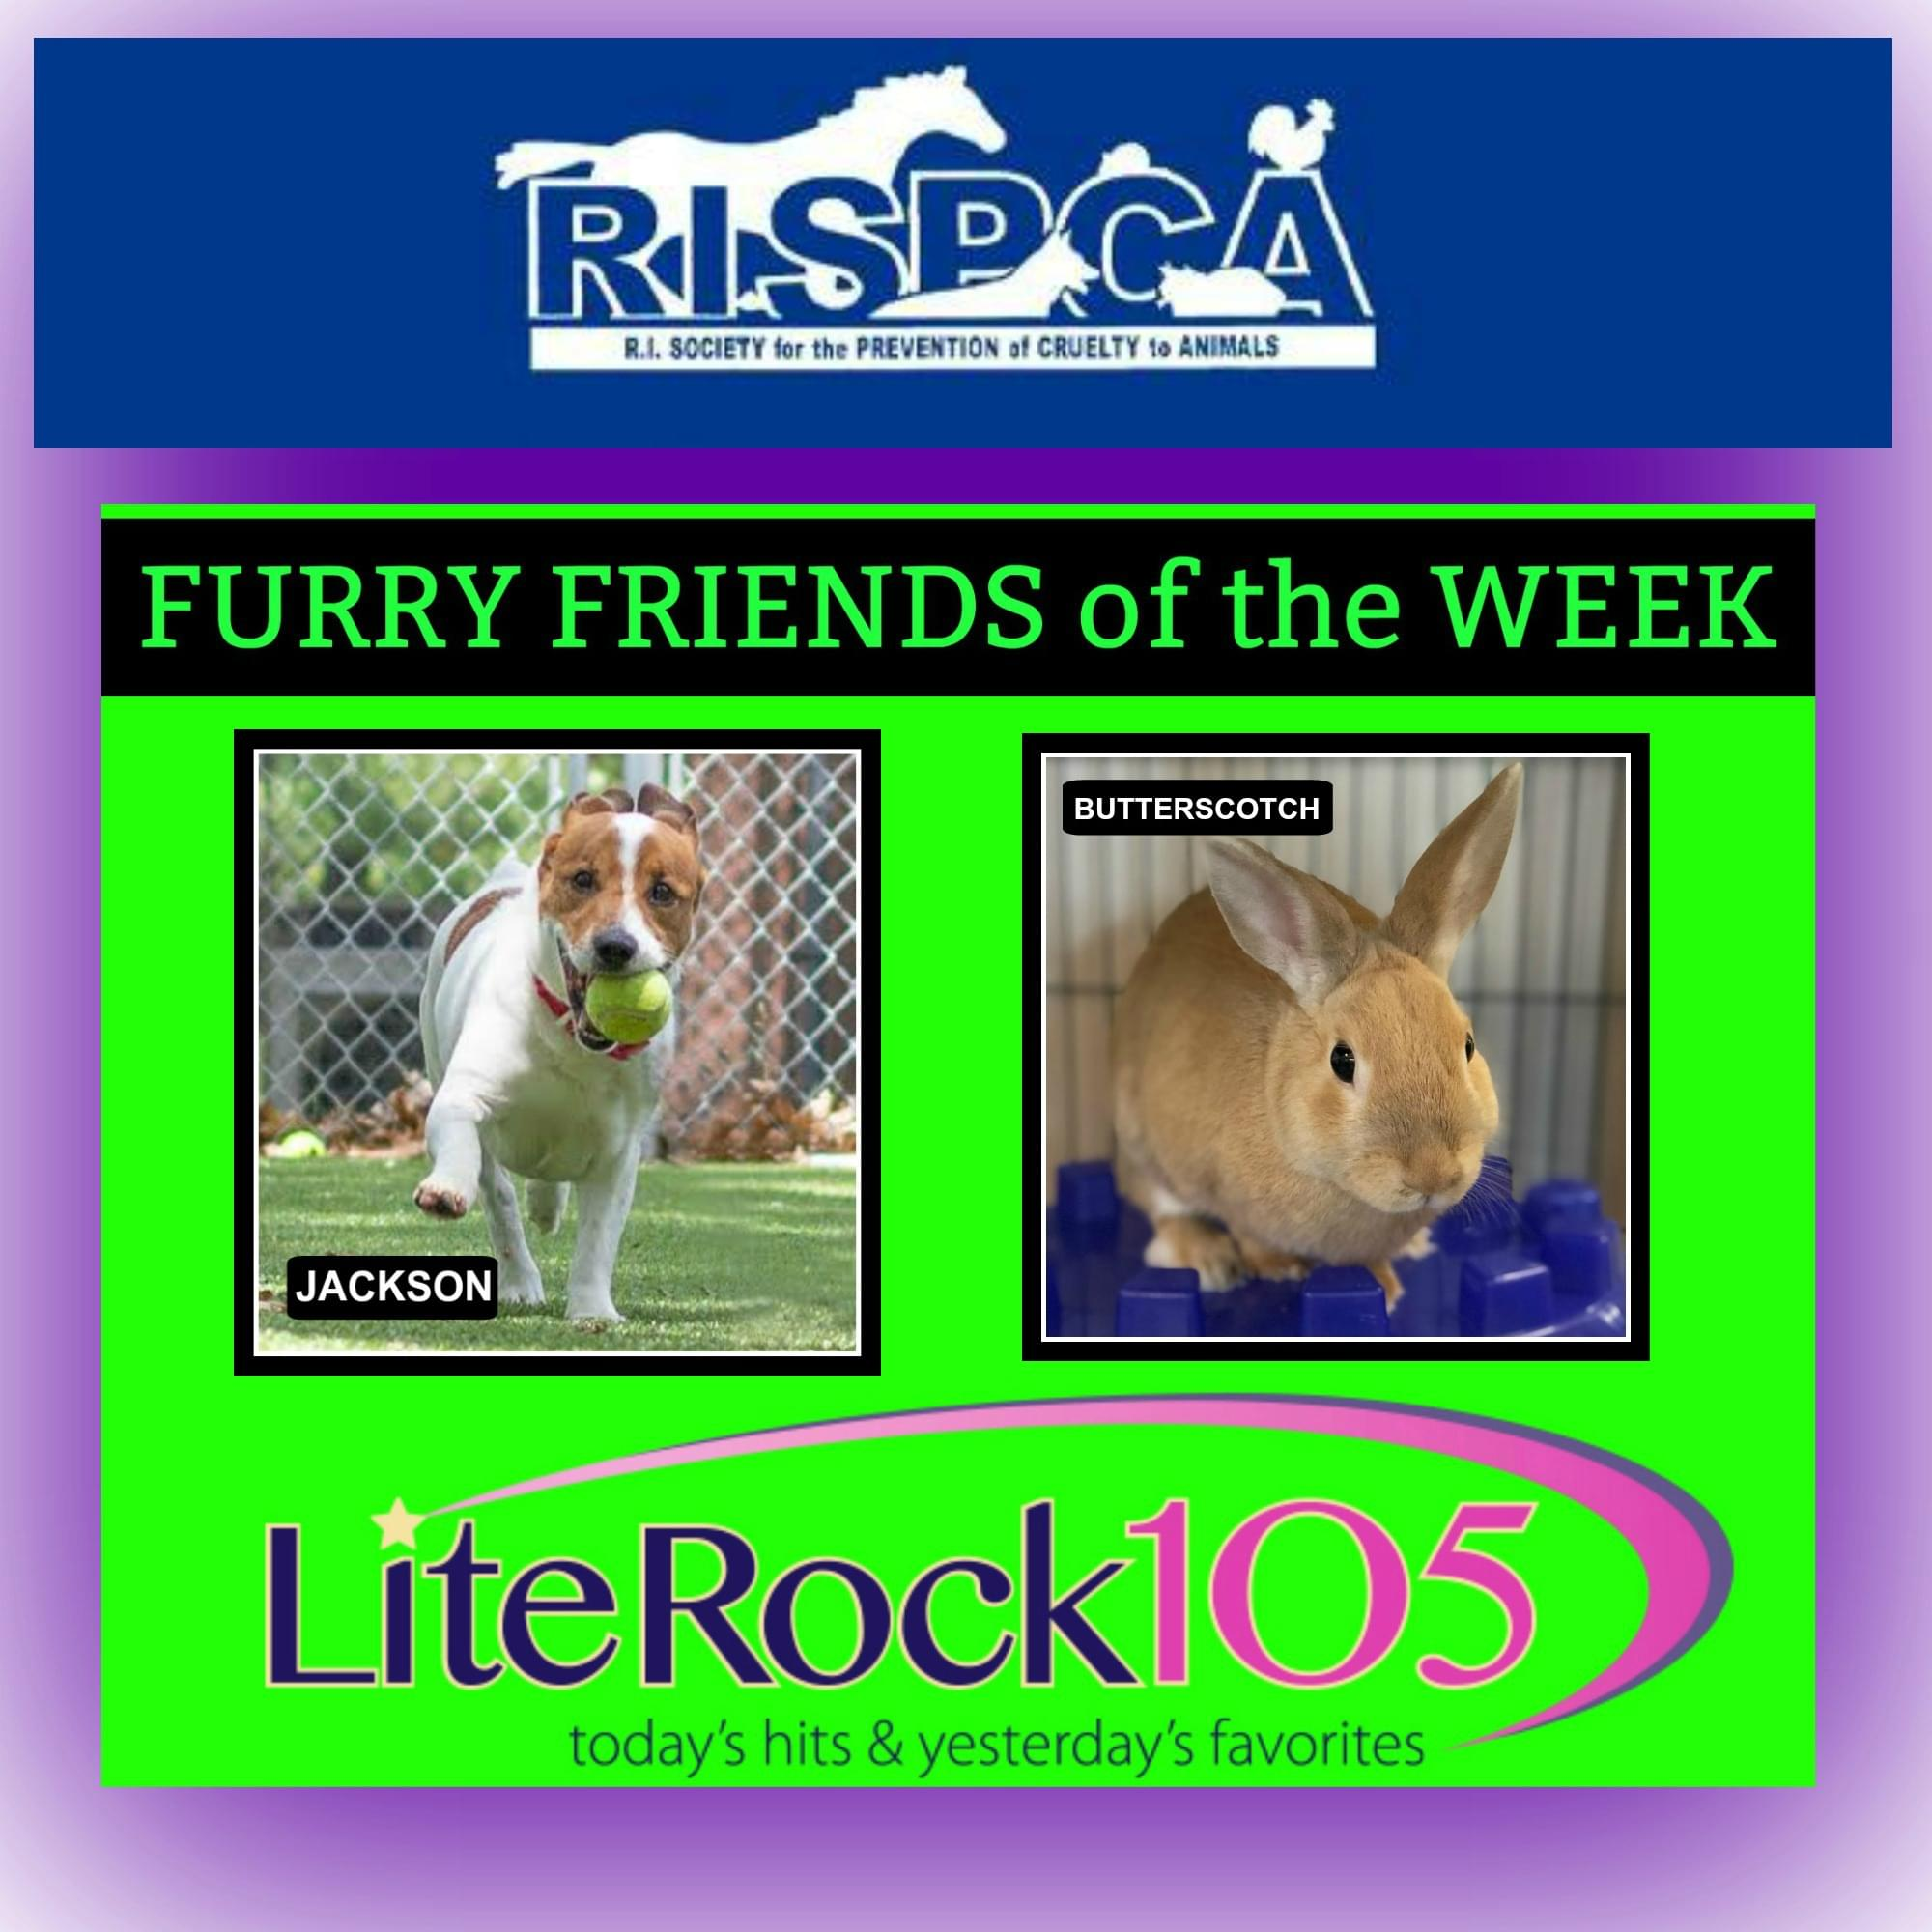 MeetJackson and Butterscotch! Our FURRY FRIENDS of the WEEK (7/8/19)